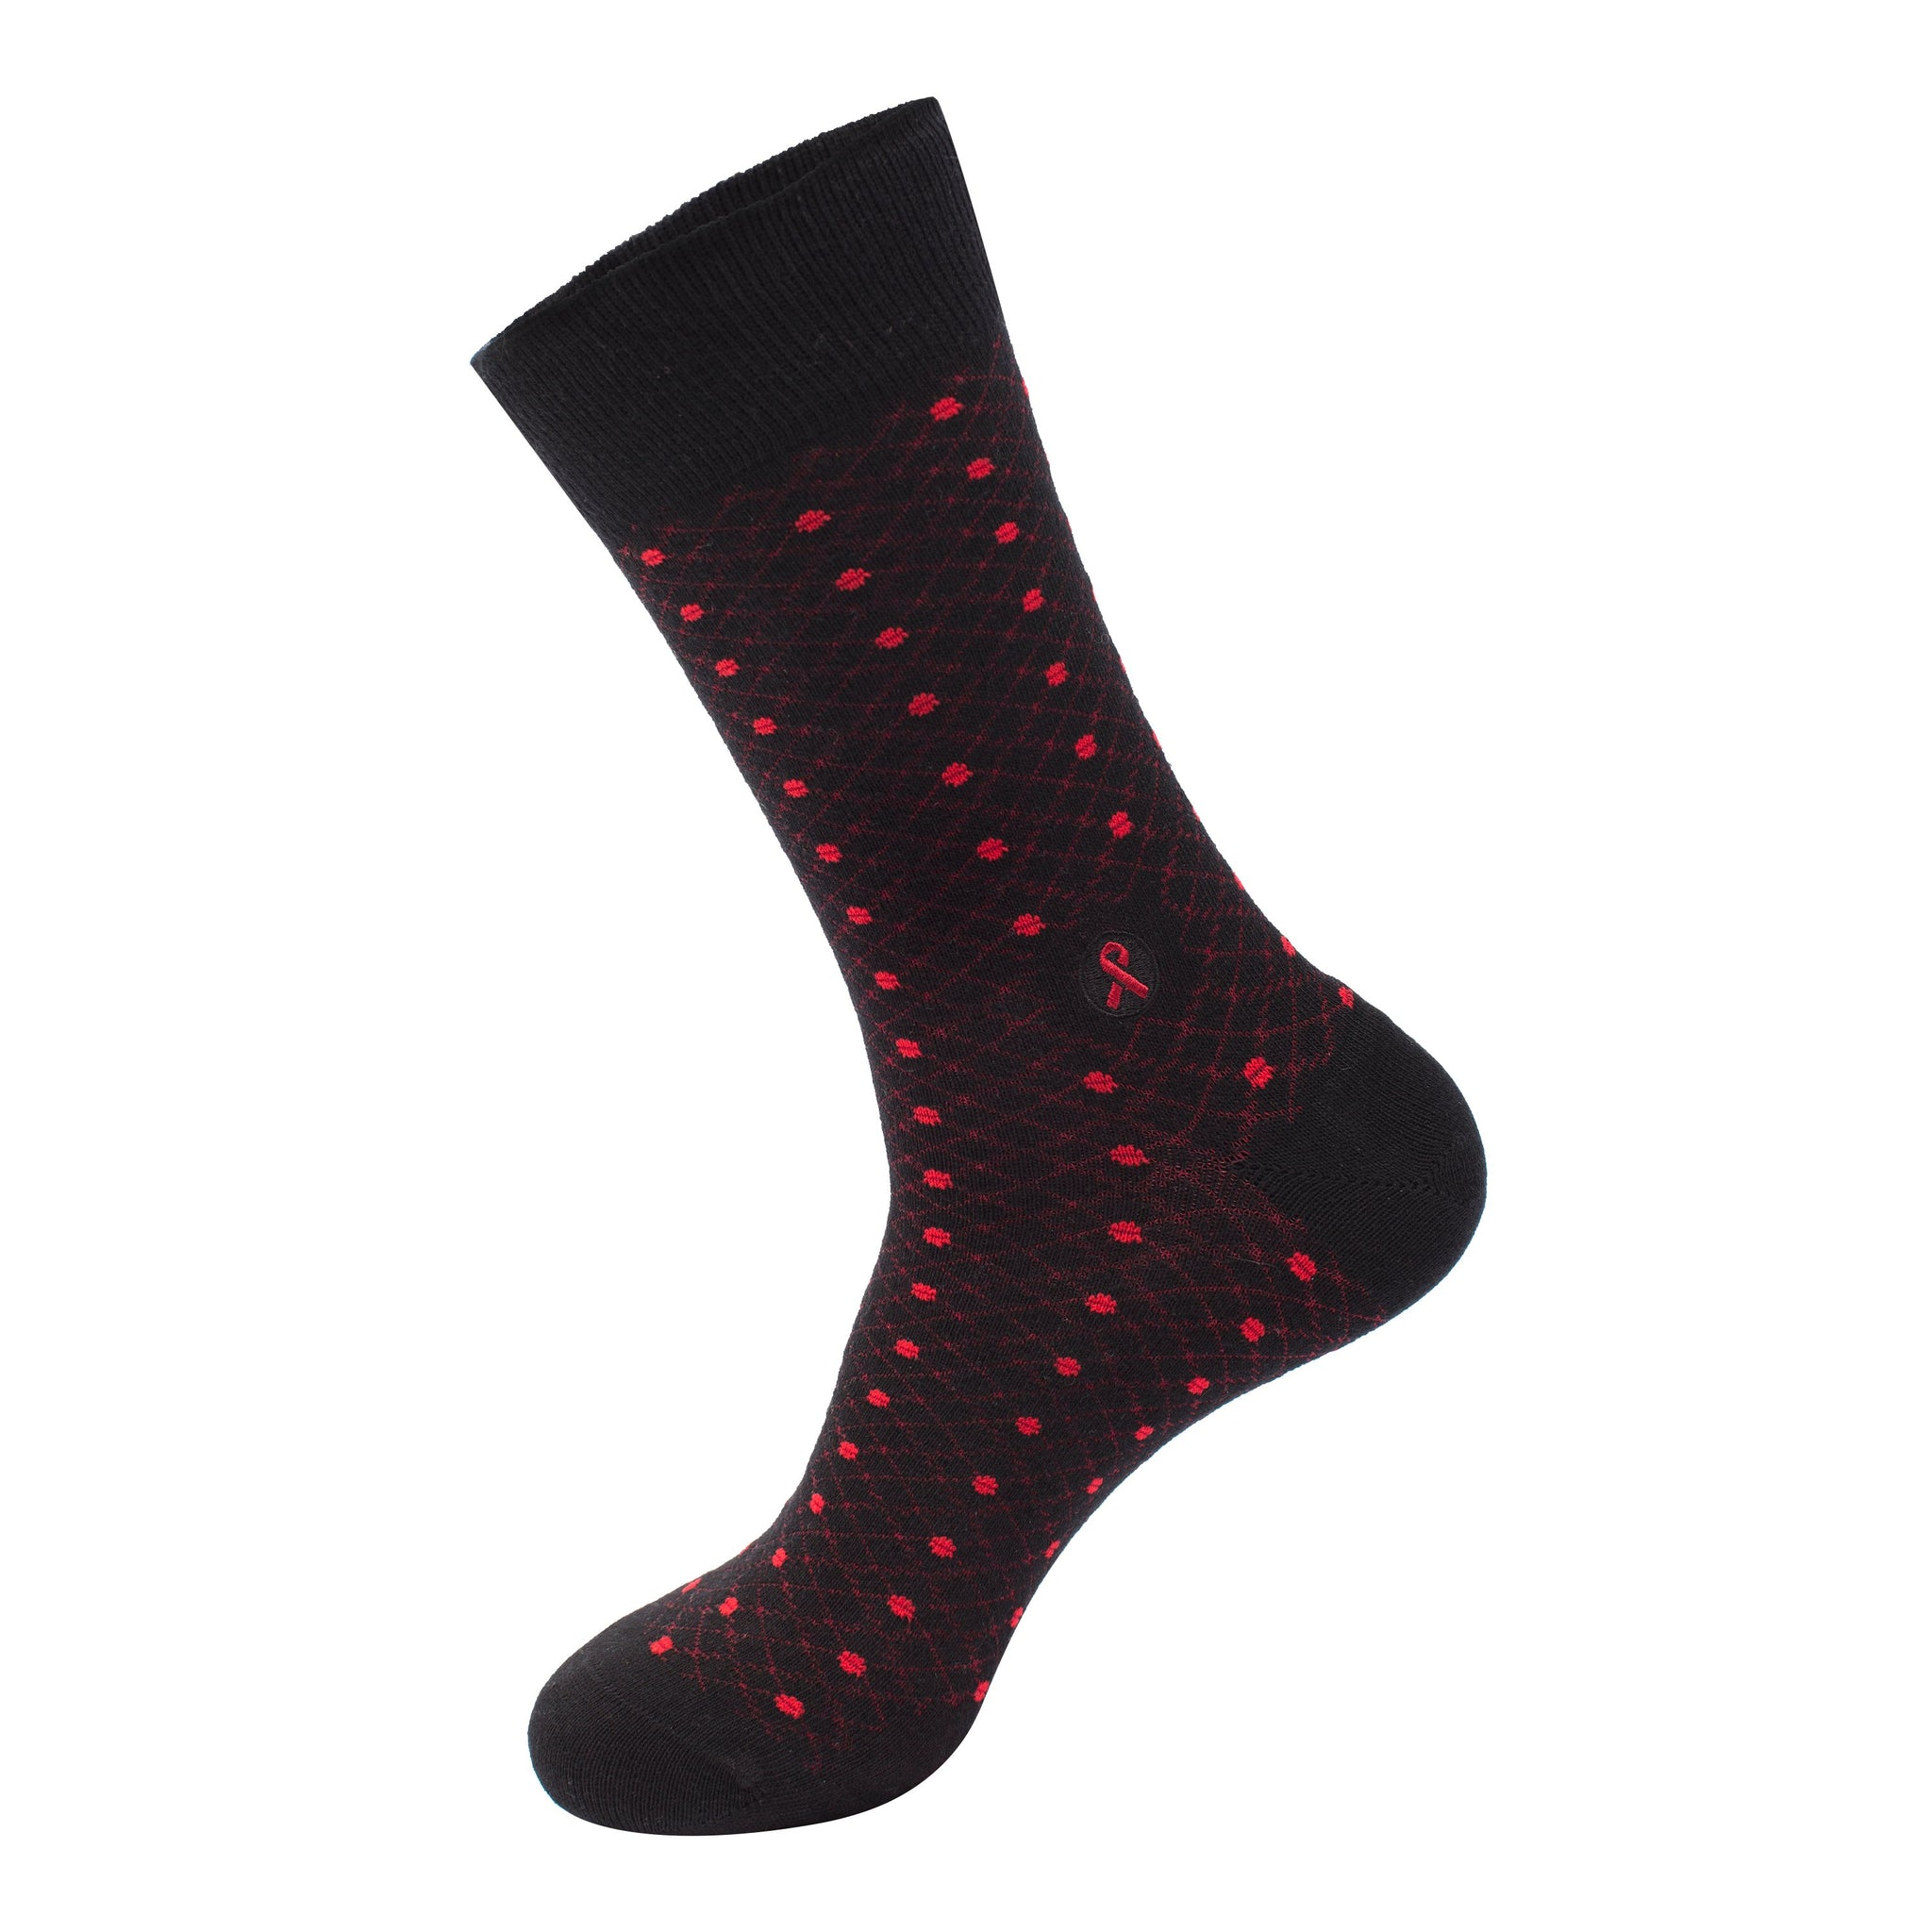 Socks that Treat HIV III